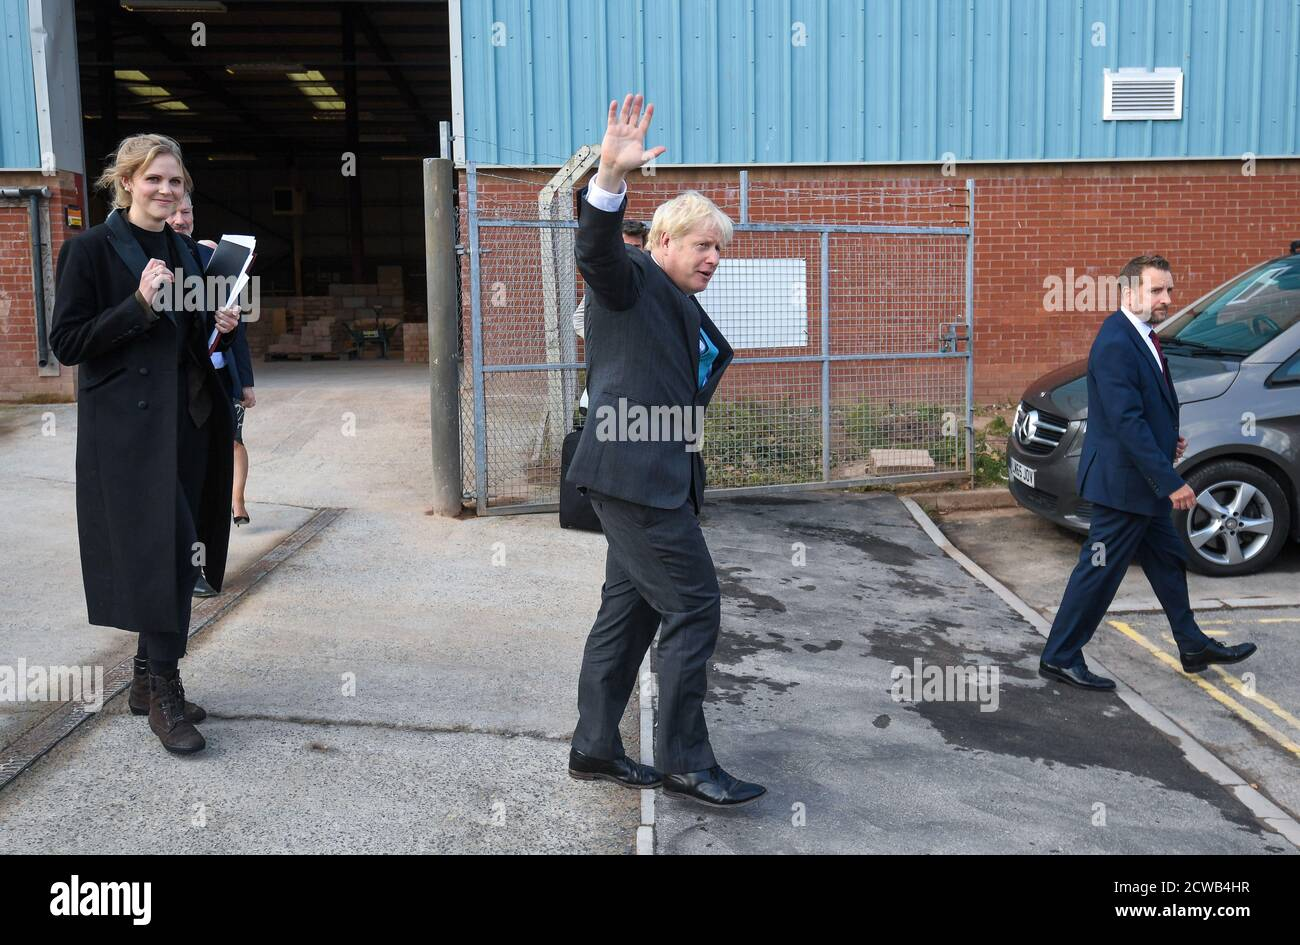 Prime Minister Boris Johnson Waves As He Leaves After Delivering A Speech During A Visit To